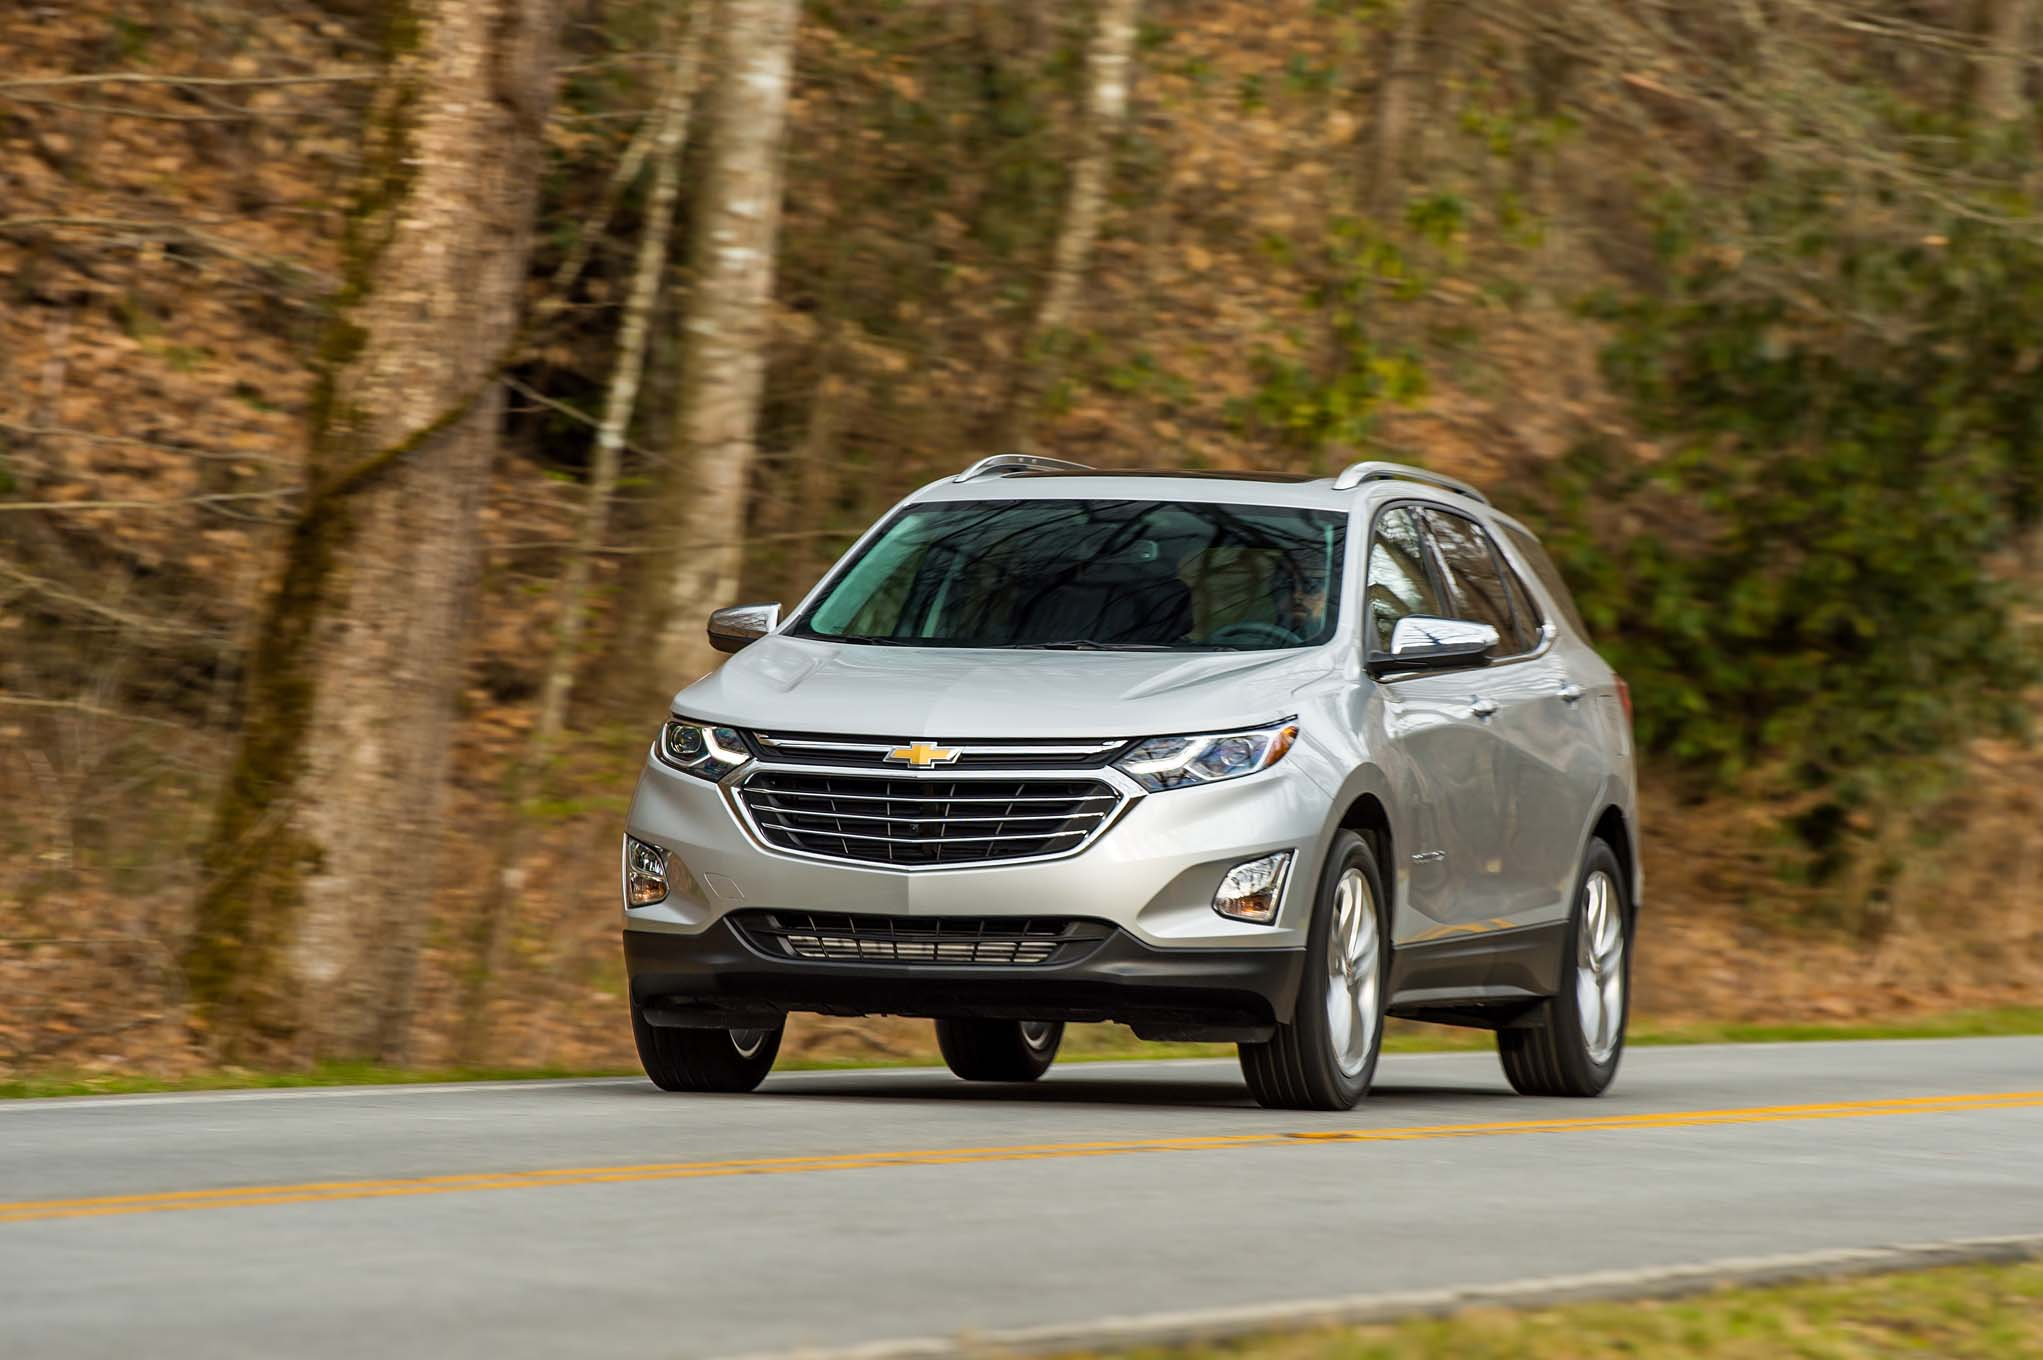 Used Cars Under $2000 Inspirational 2018 Chevrolet Equinox First Drive Review